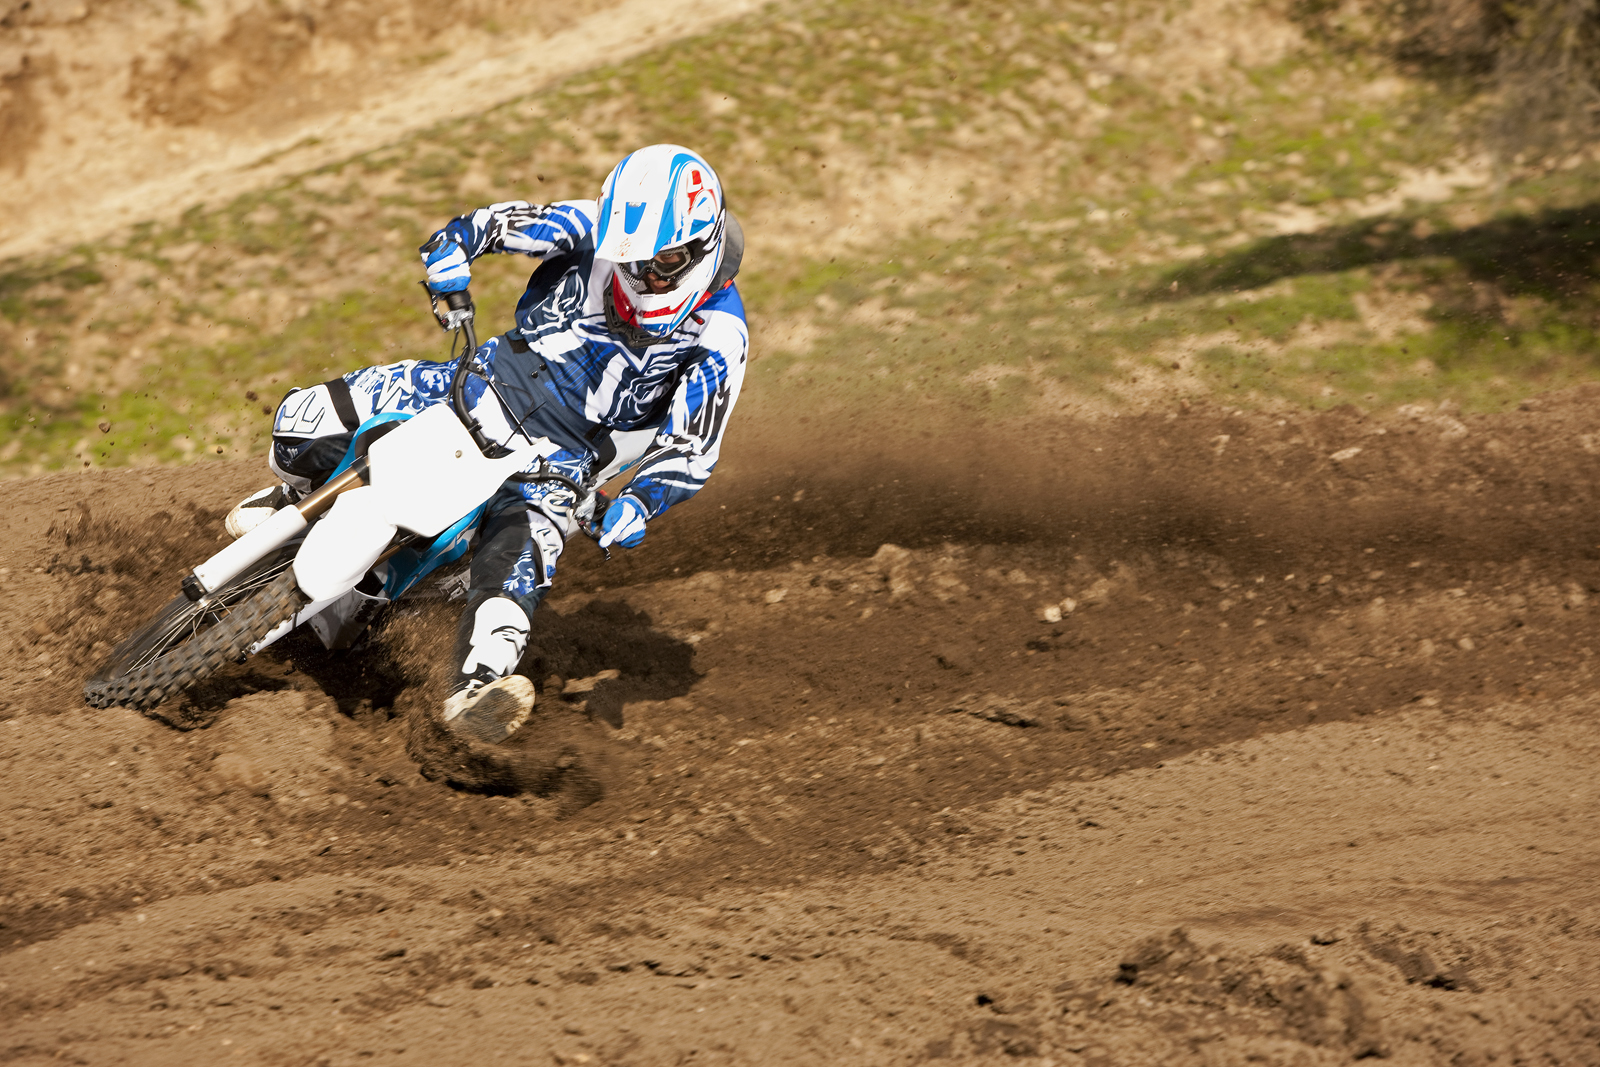 2010 Zero MX Electric Motorcycle: Zaca Station - Low Burm Foot Down